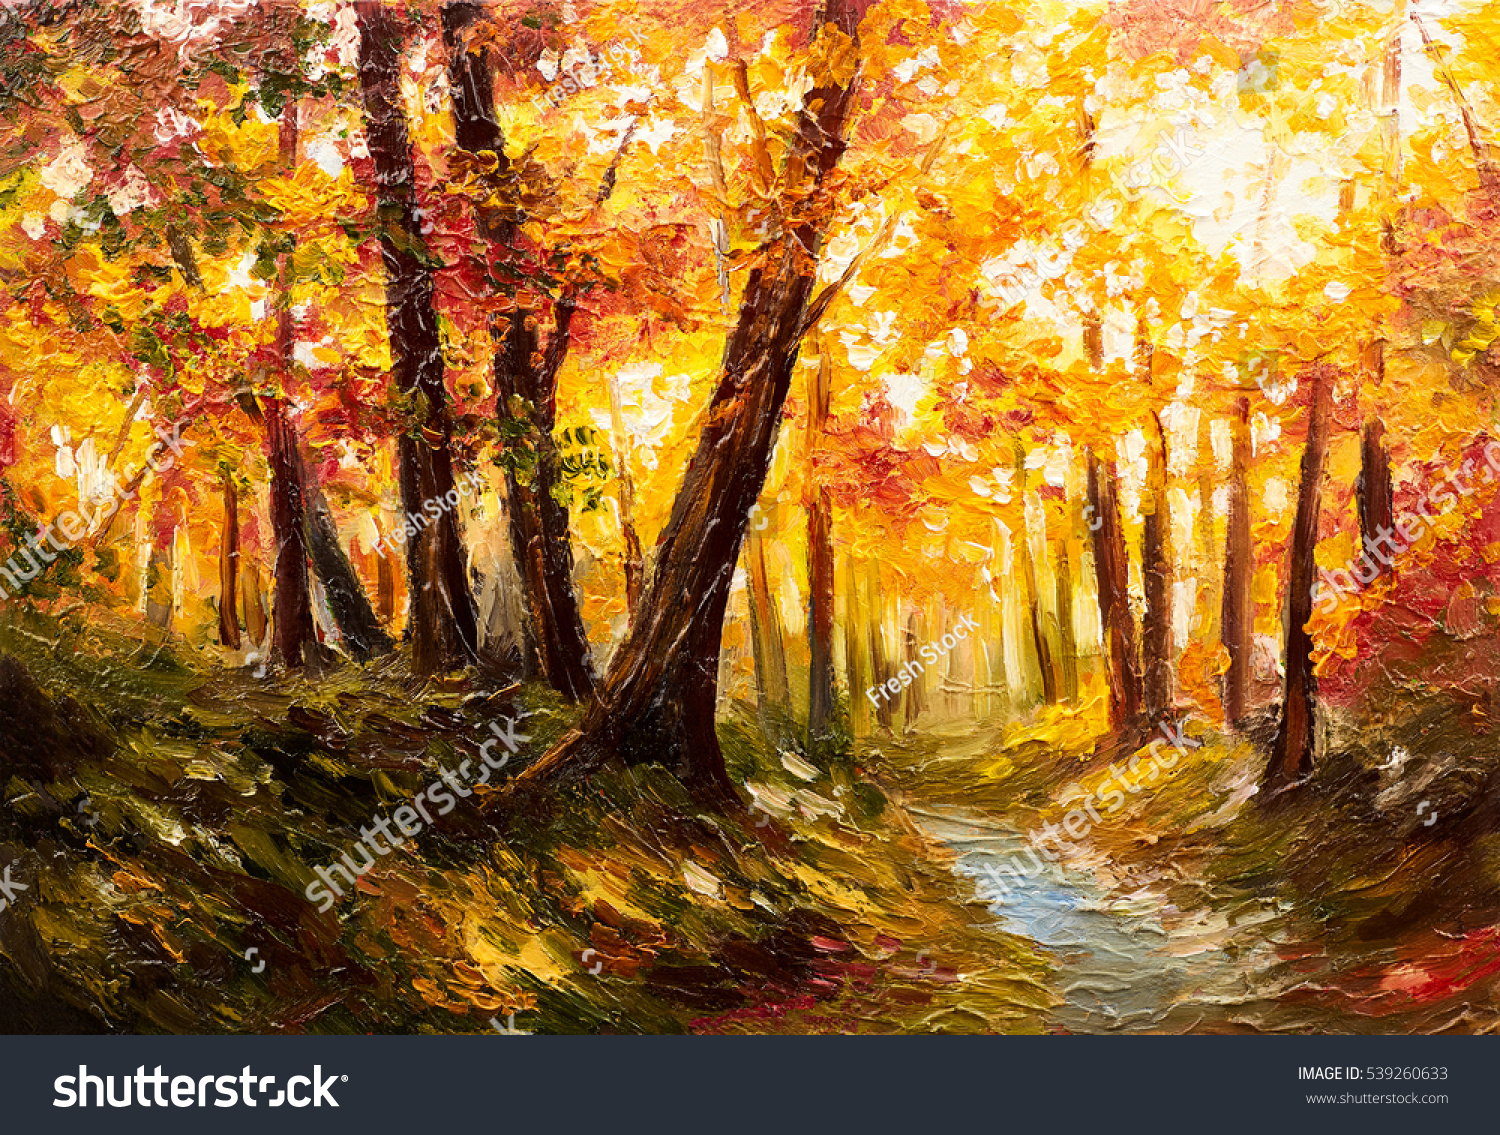 Oil painting landscape autumn forest near stock for Oil painting scenery